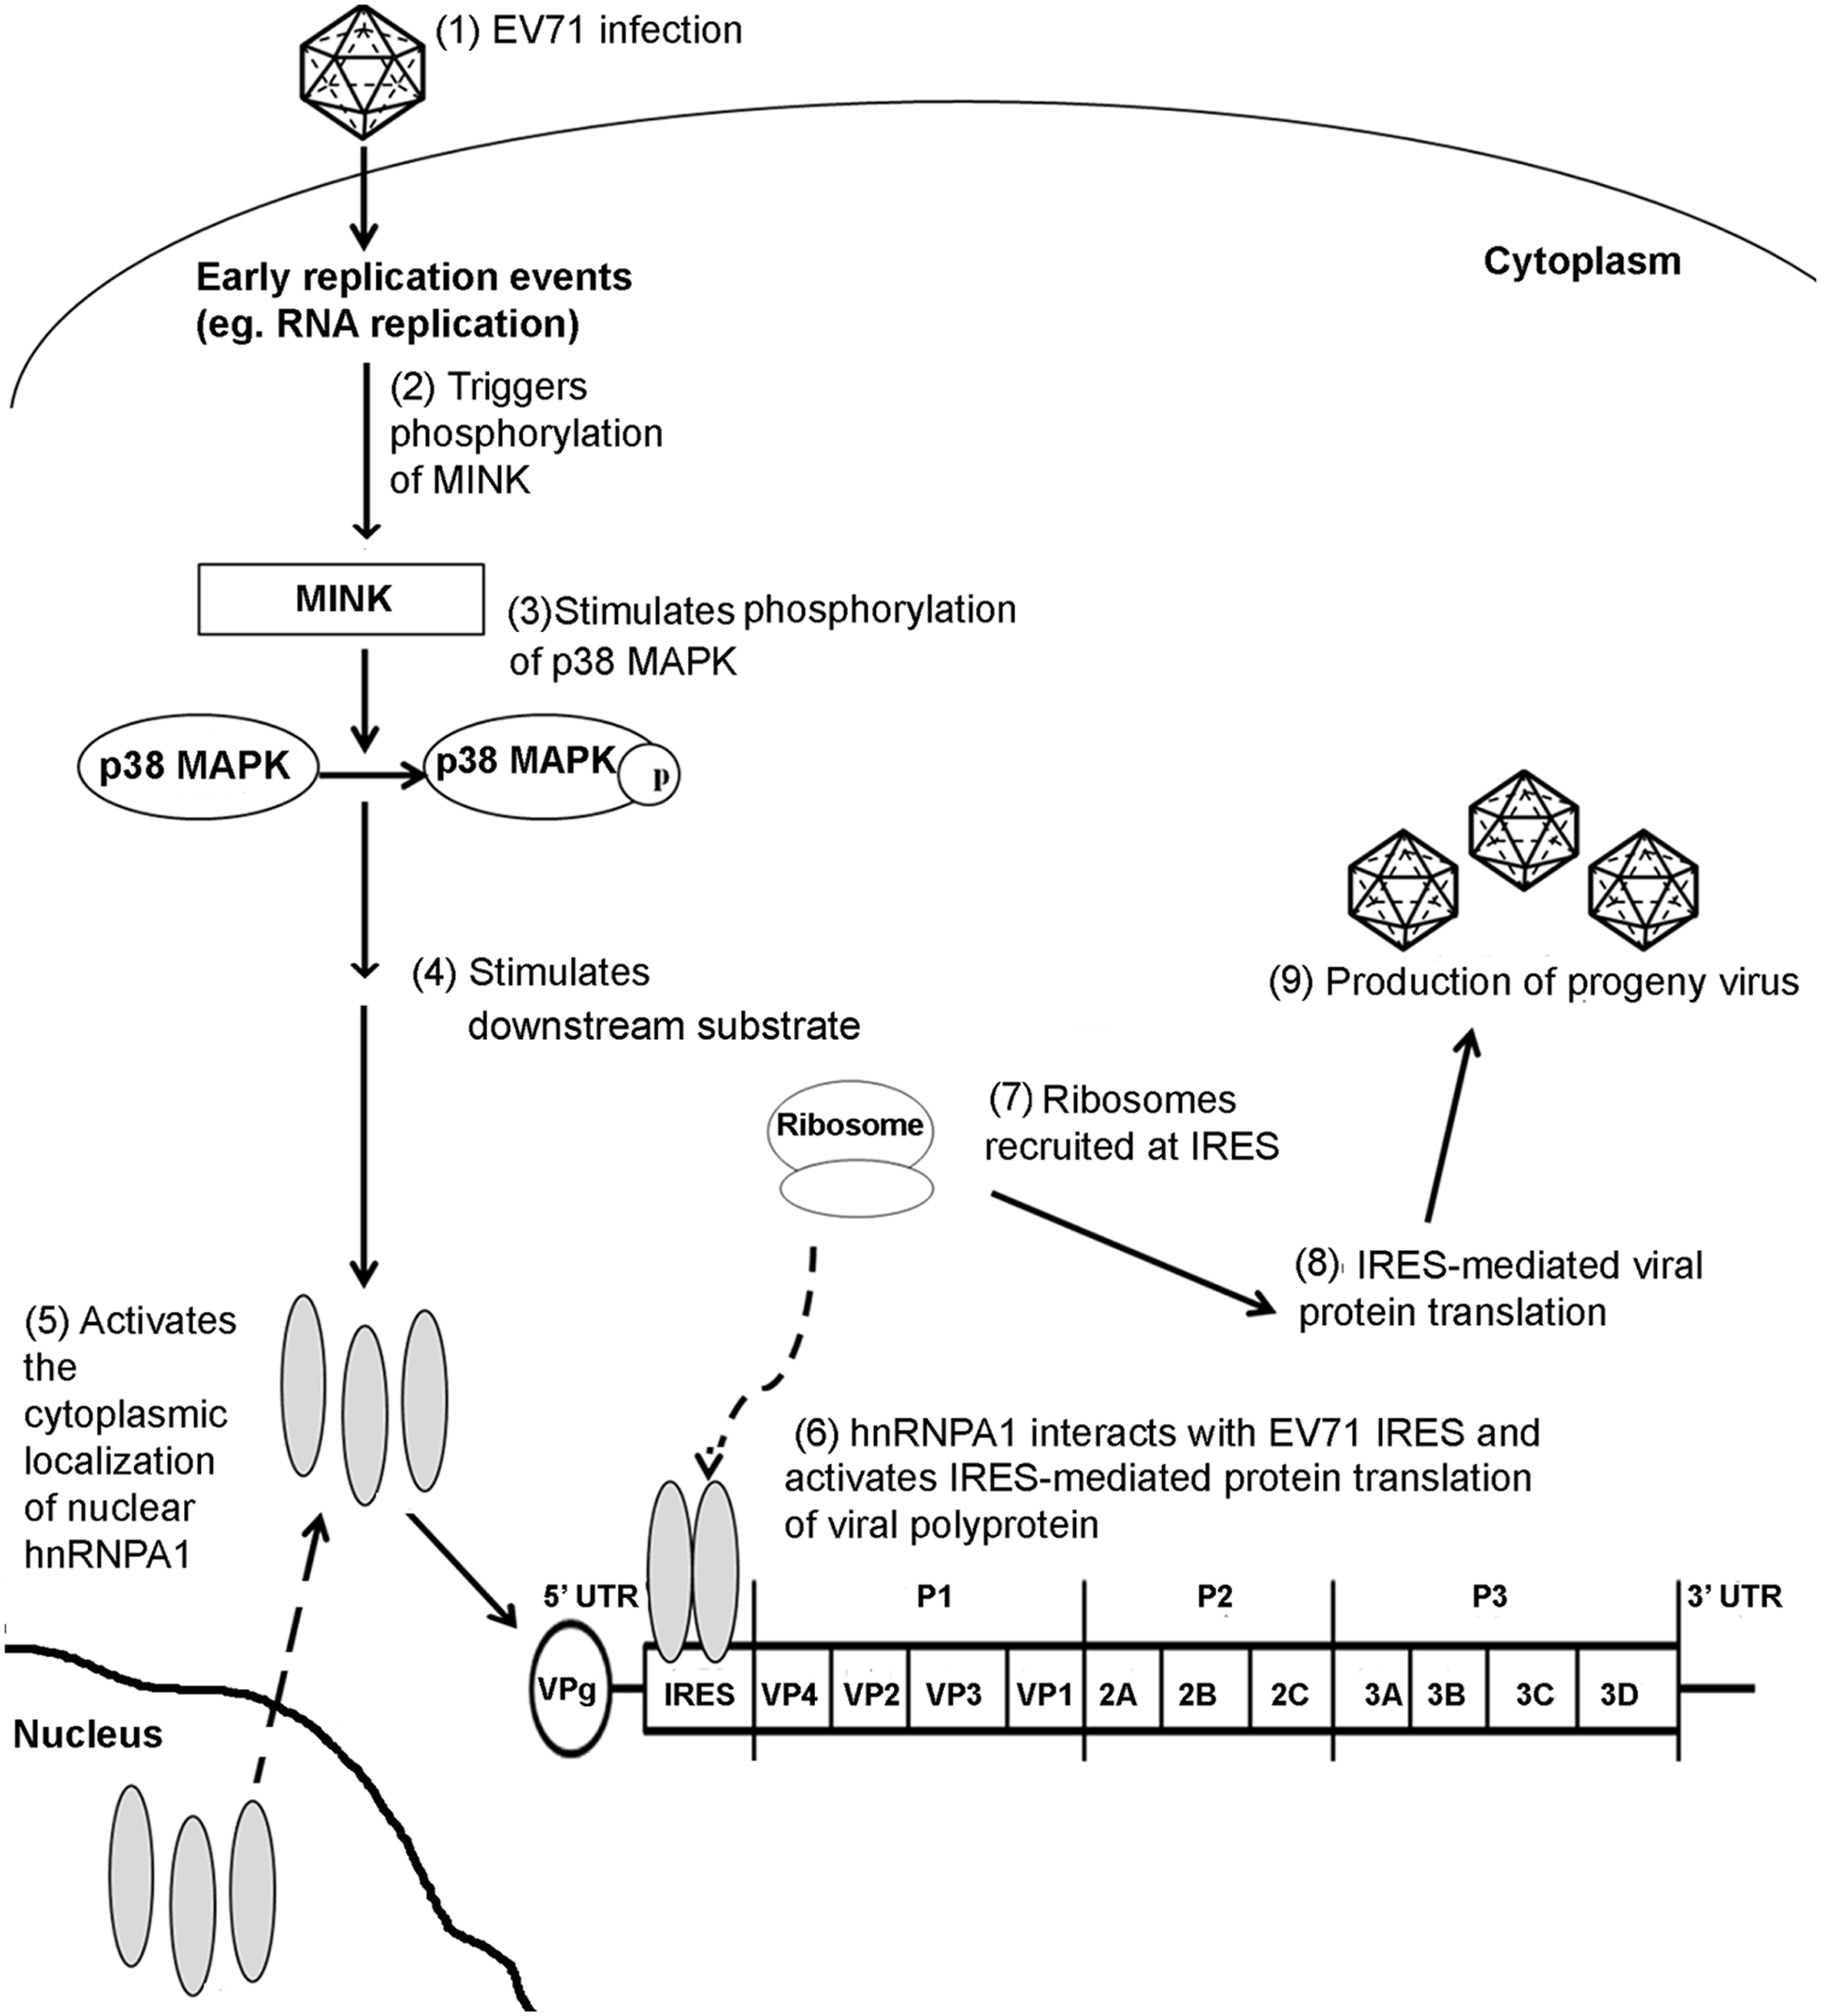 Proposed mechanism of action of MINK in the EV71 replication cycle.